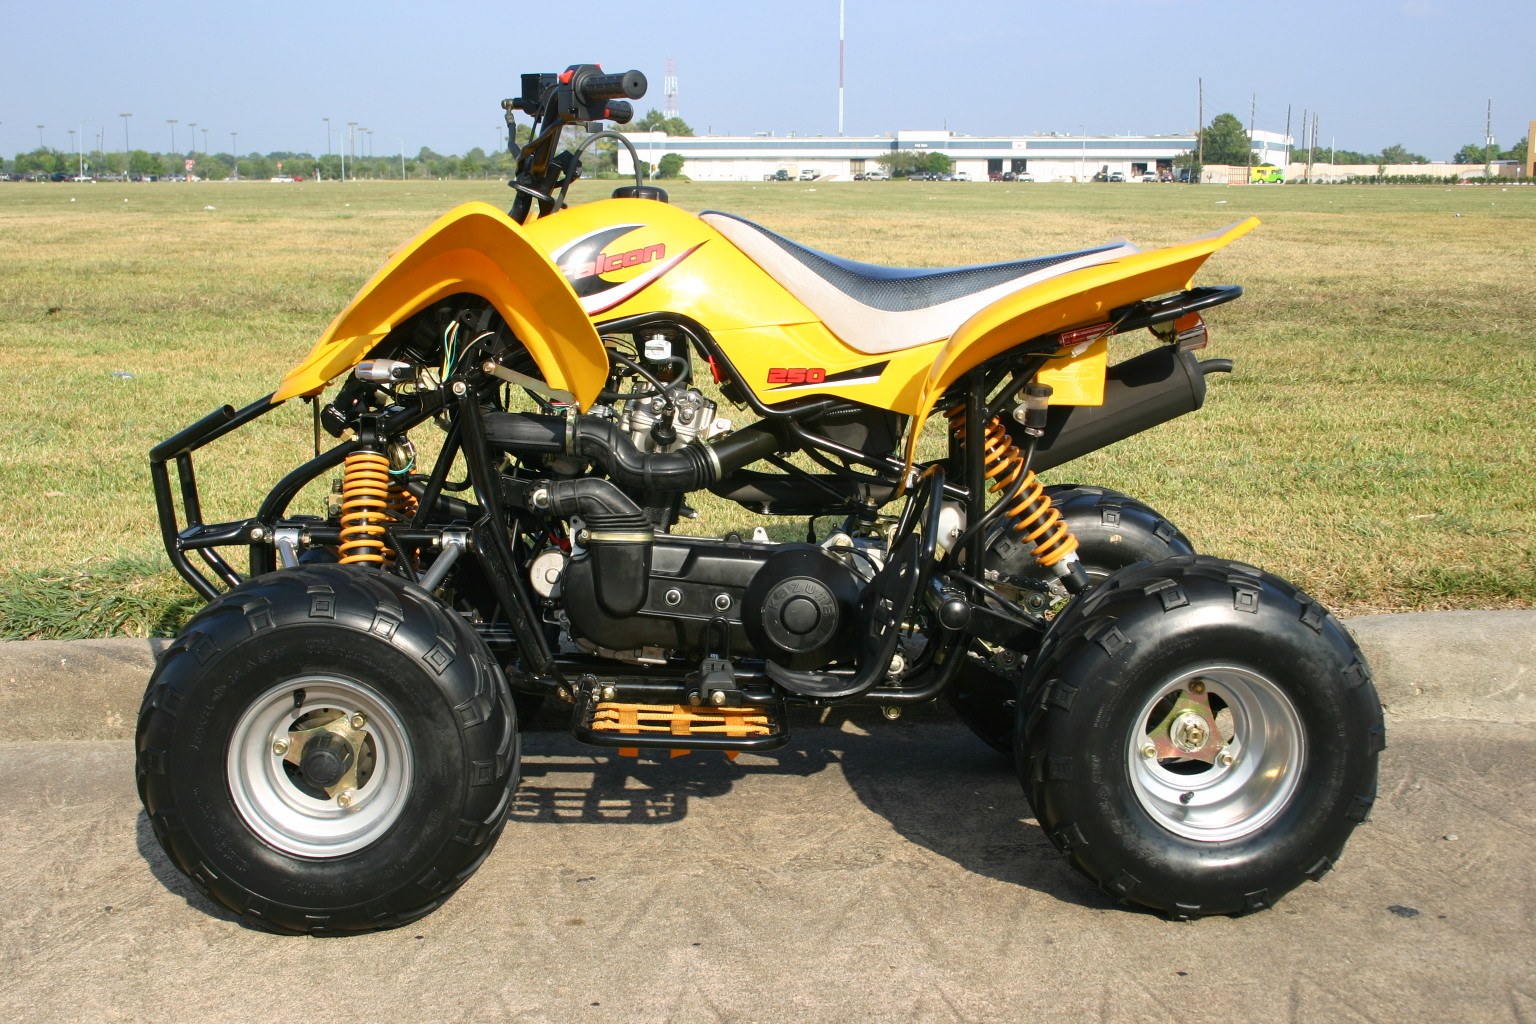 falcon 110 wiring diagram Images Gallery. engine for kazuma falcon 110 atvs  engine free engine